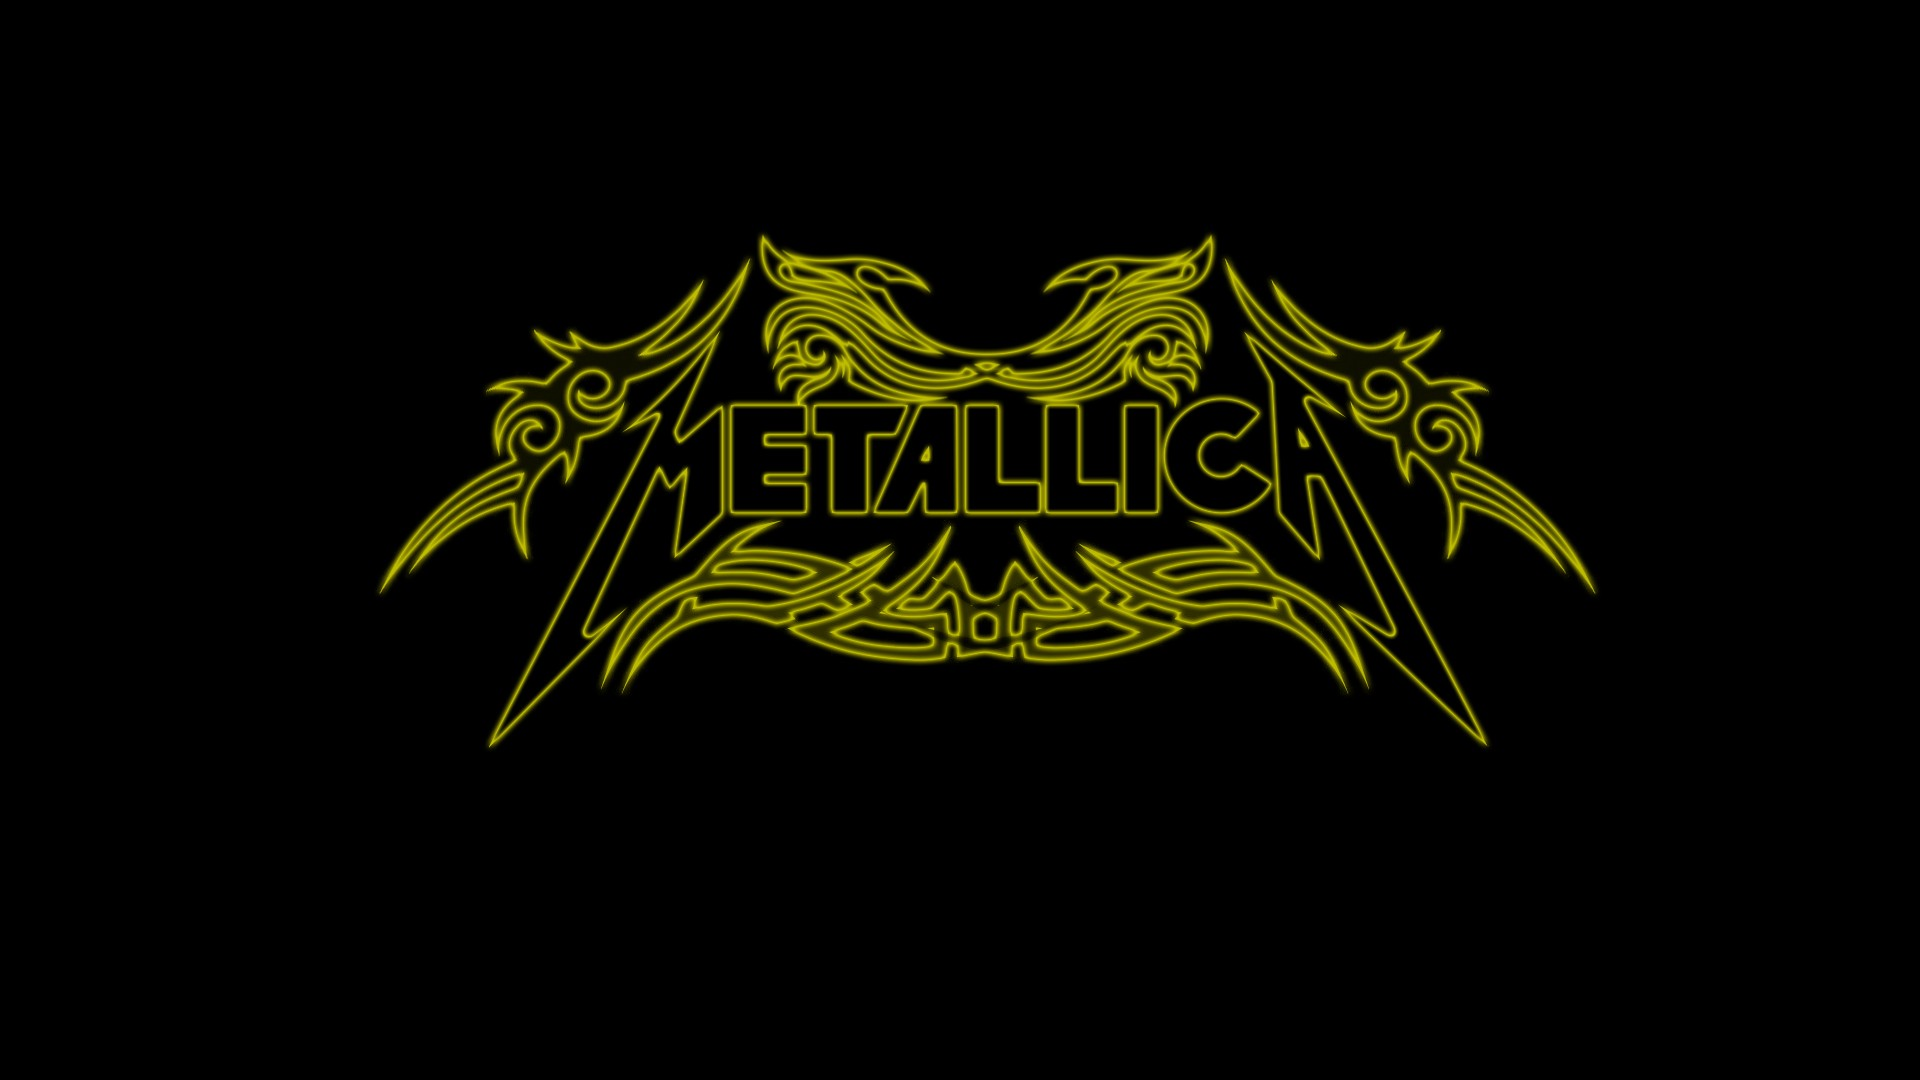 1920x1080 vertical metallica wallpaper 1920x1080 for htc